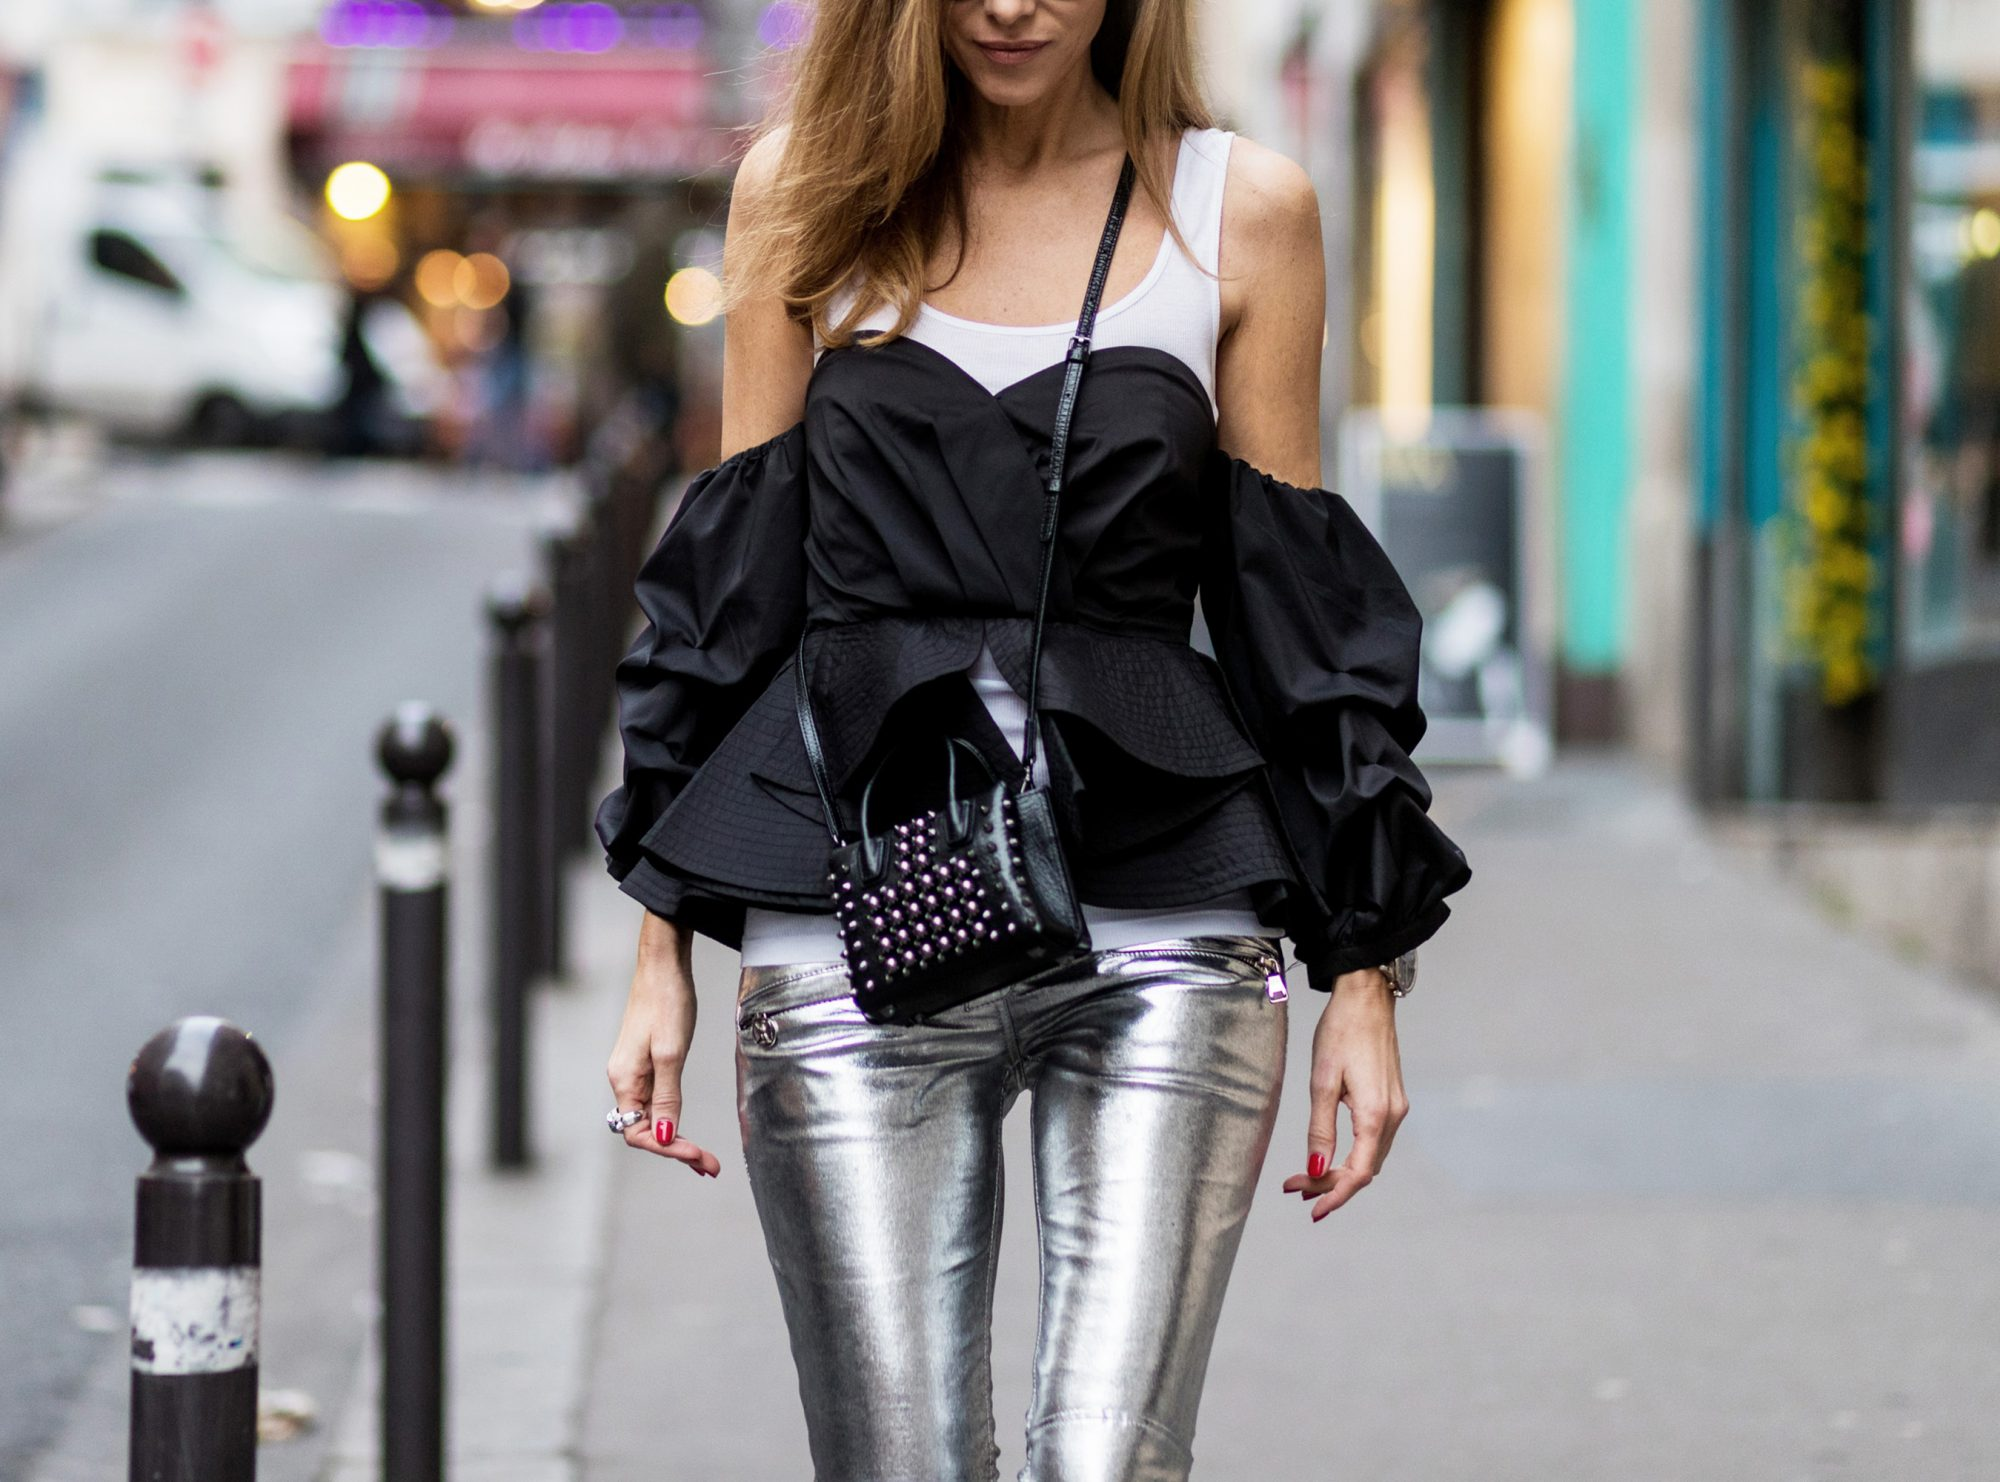 STRUCTURAL LAYERING AND HIGH-SHINE PANTS